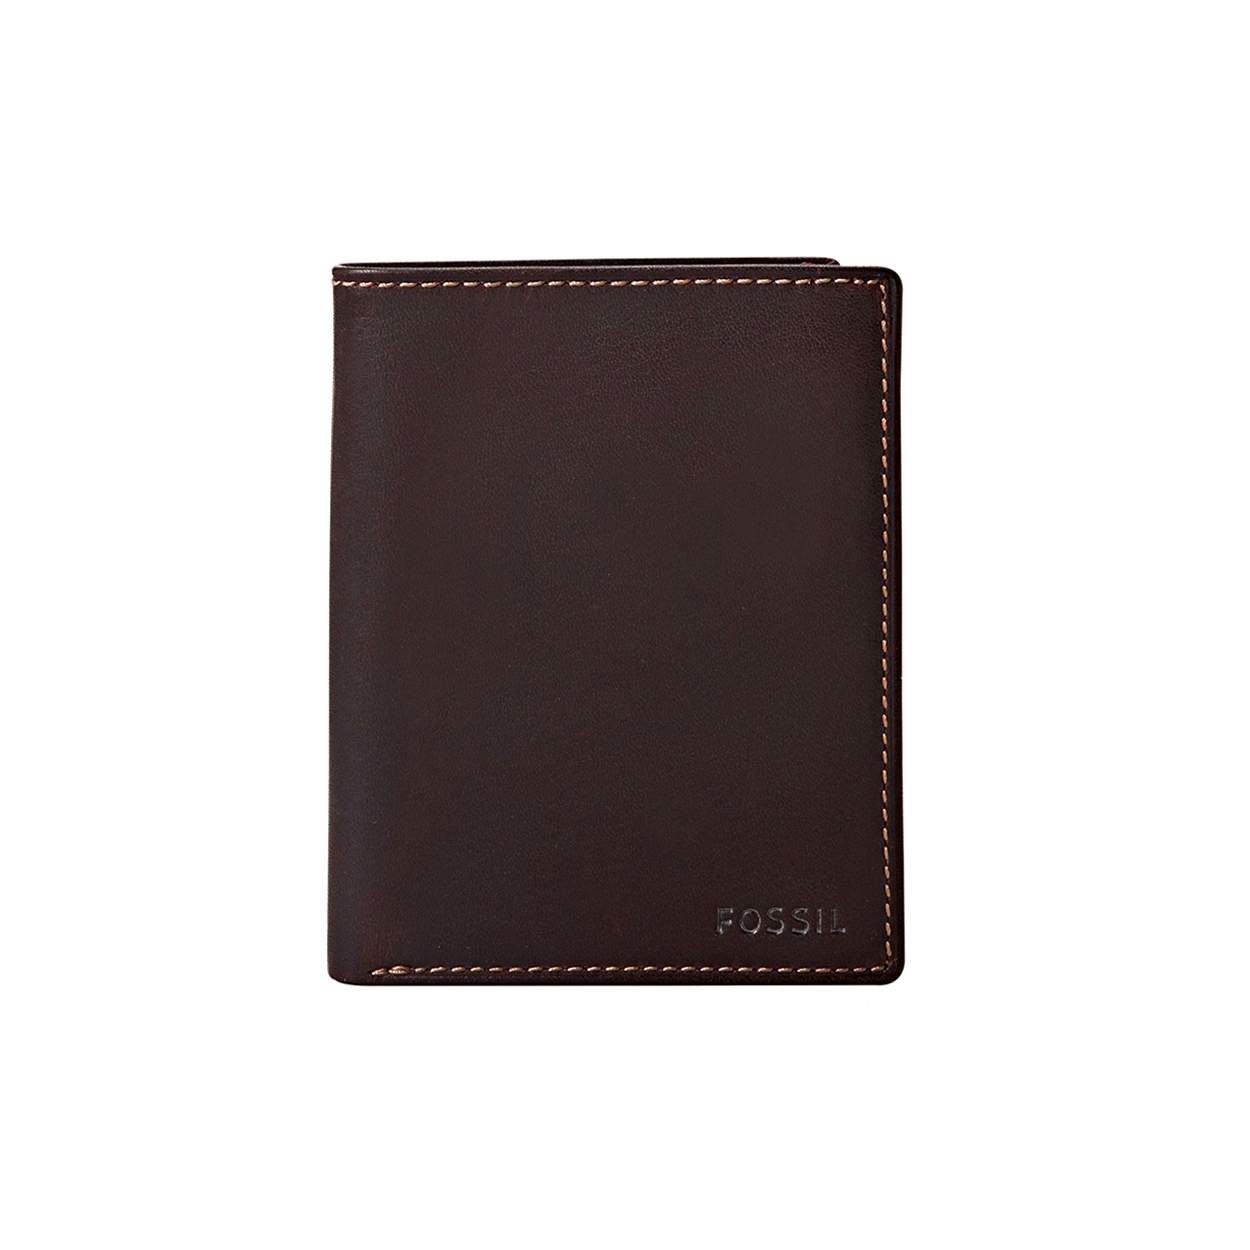 PRESTON GENTS WALLET CORDOVAN